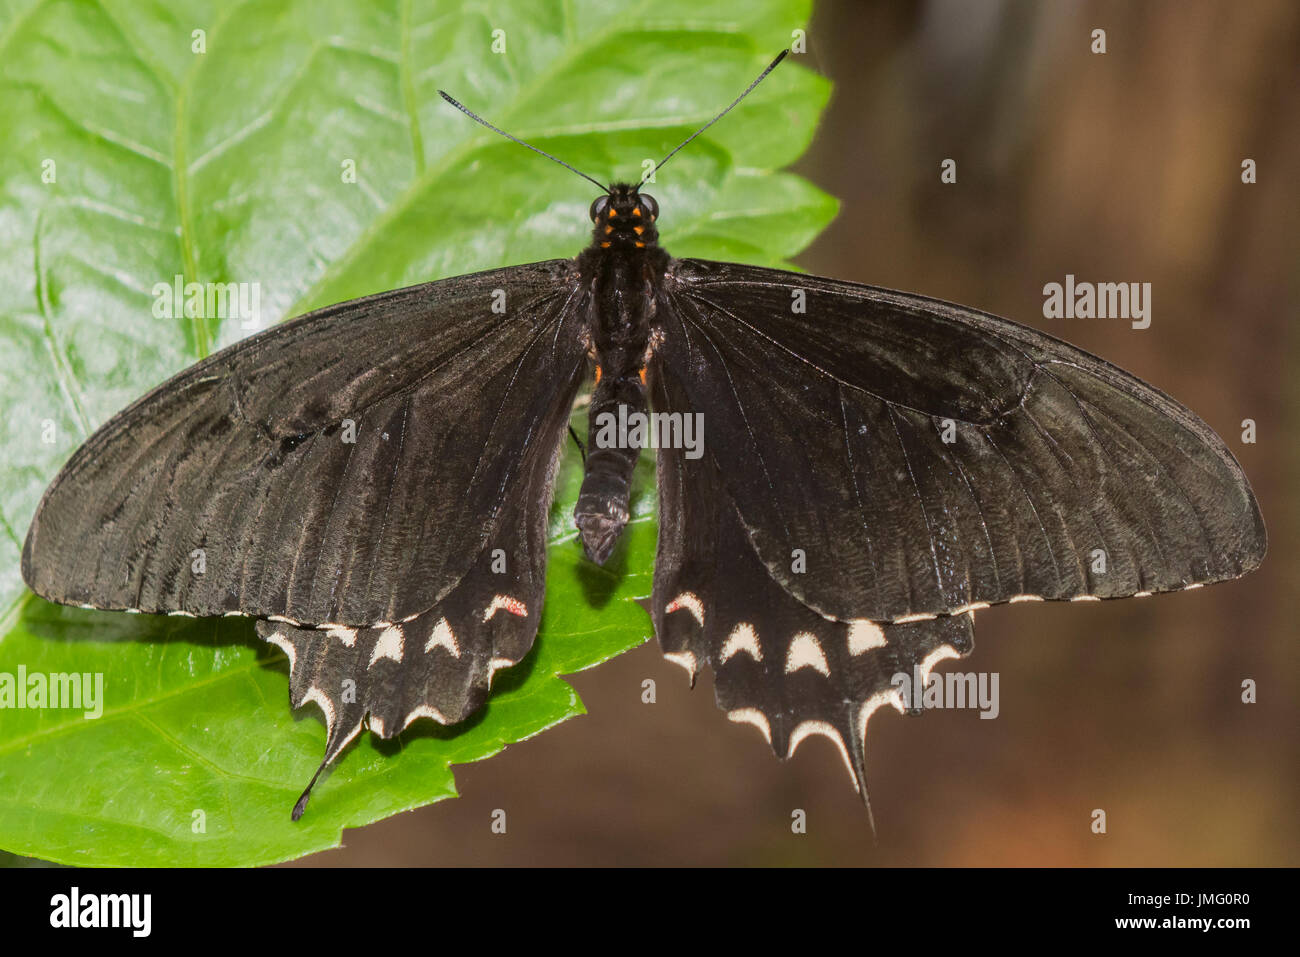 An adult Cream-banded Swallowtail butterfly - Stock Image